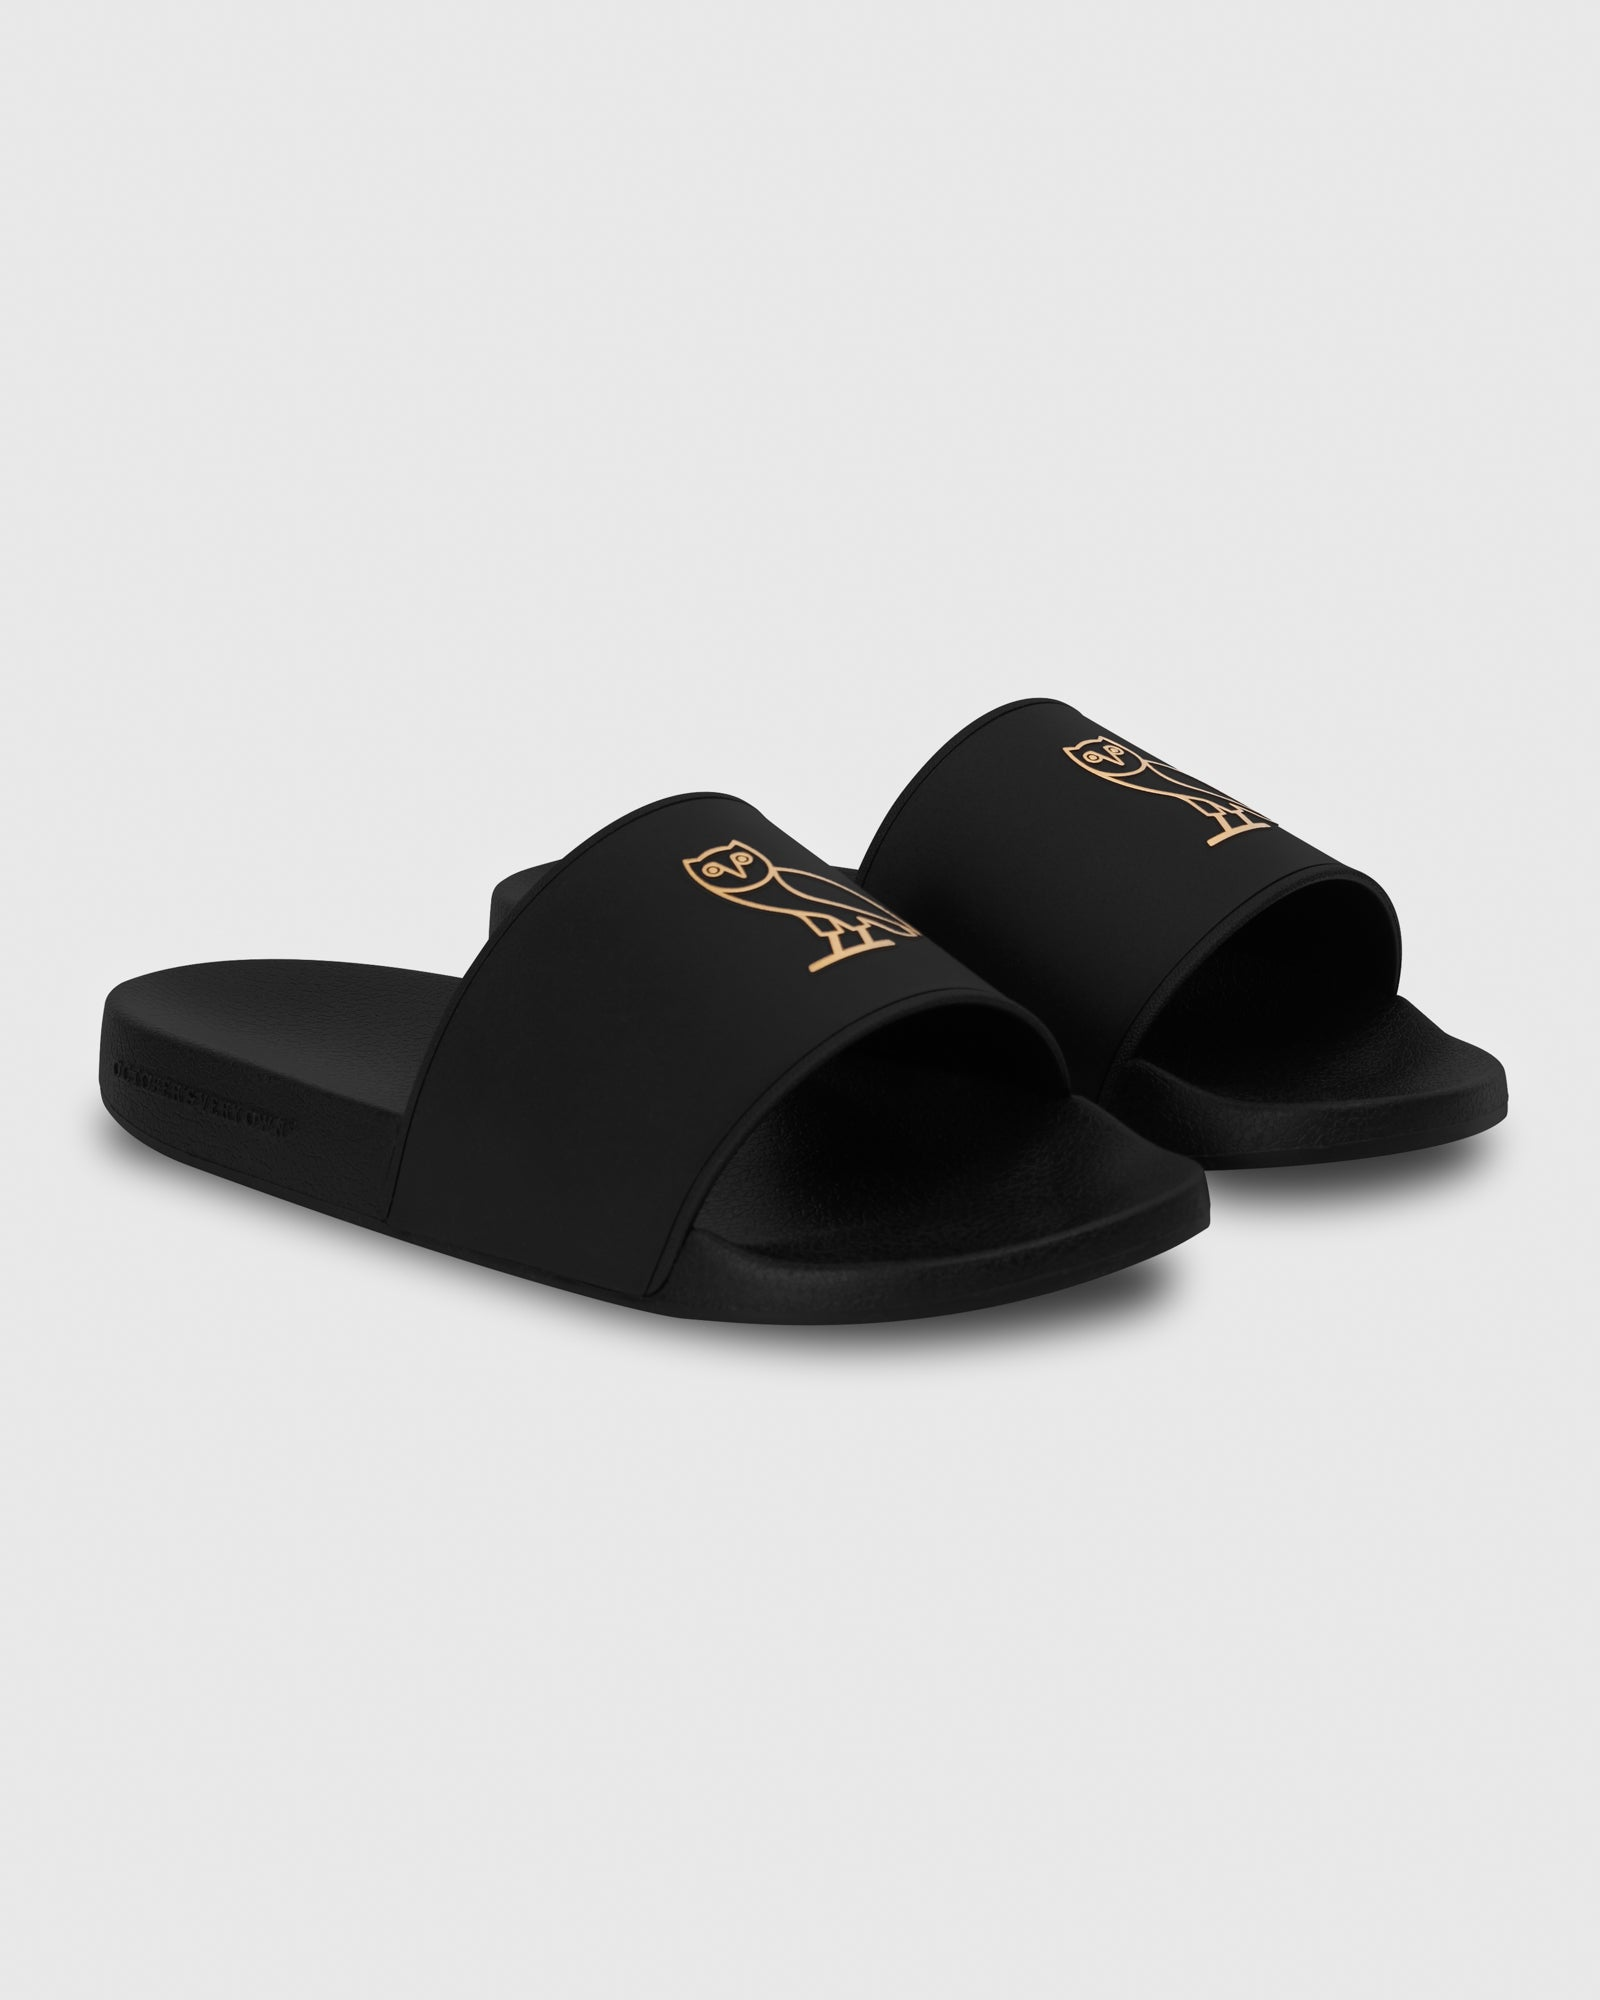 OVO SLIDES - BLACK